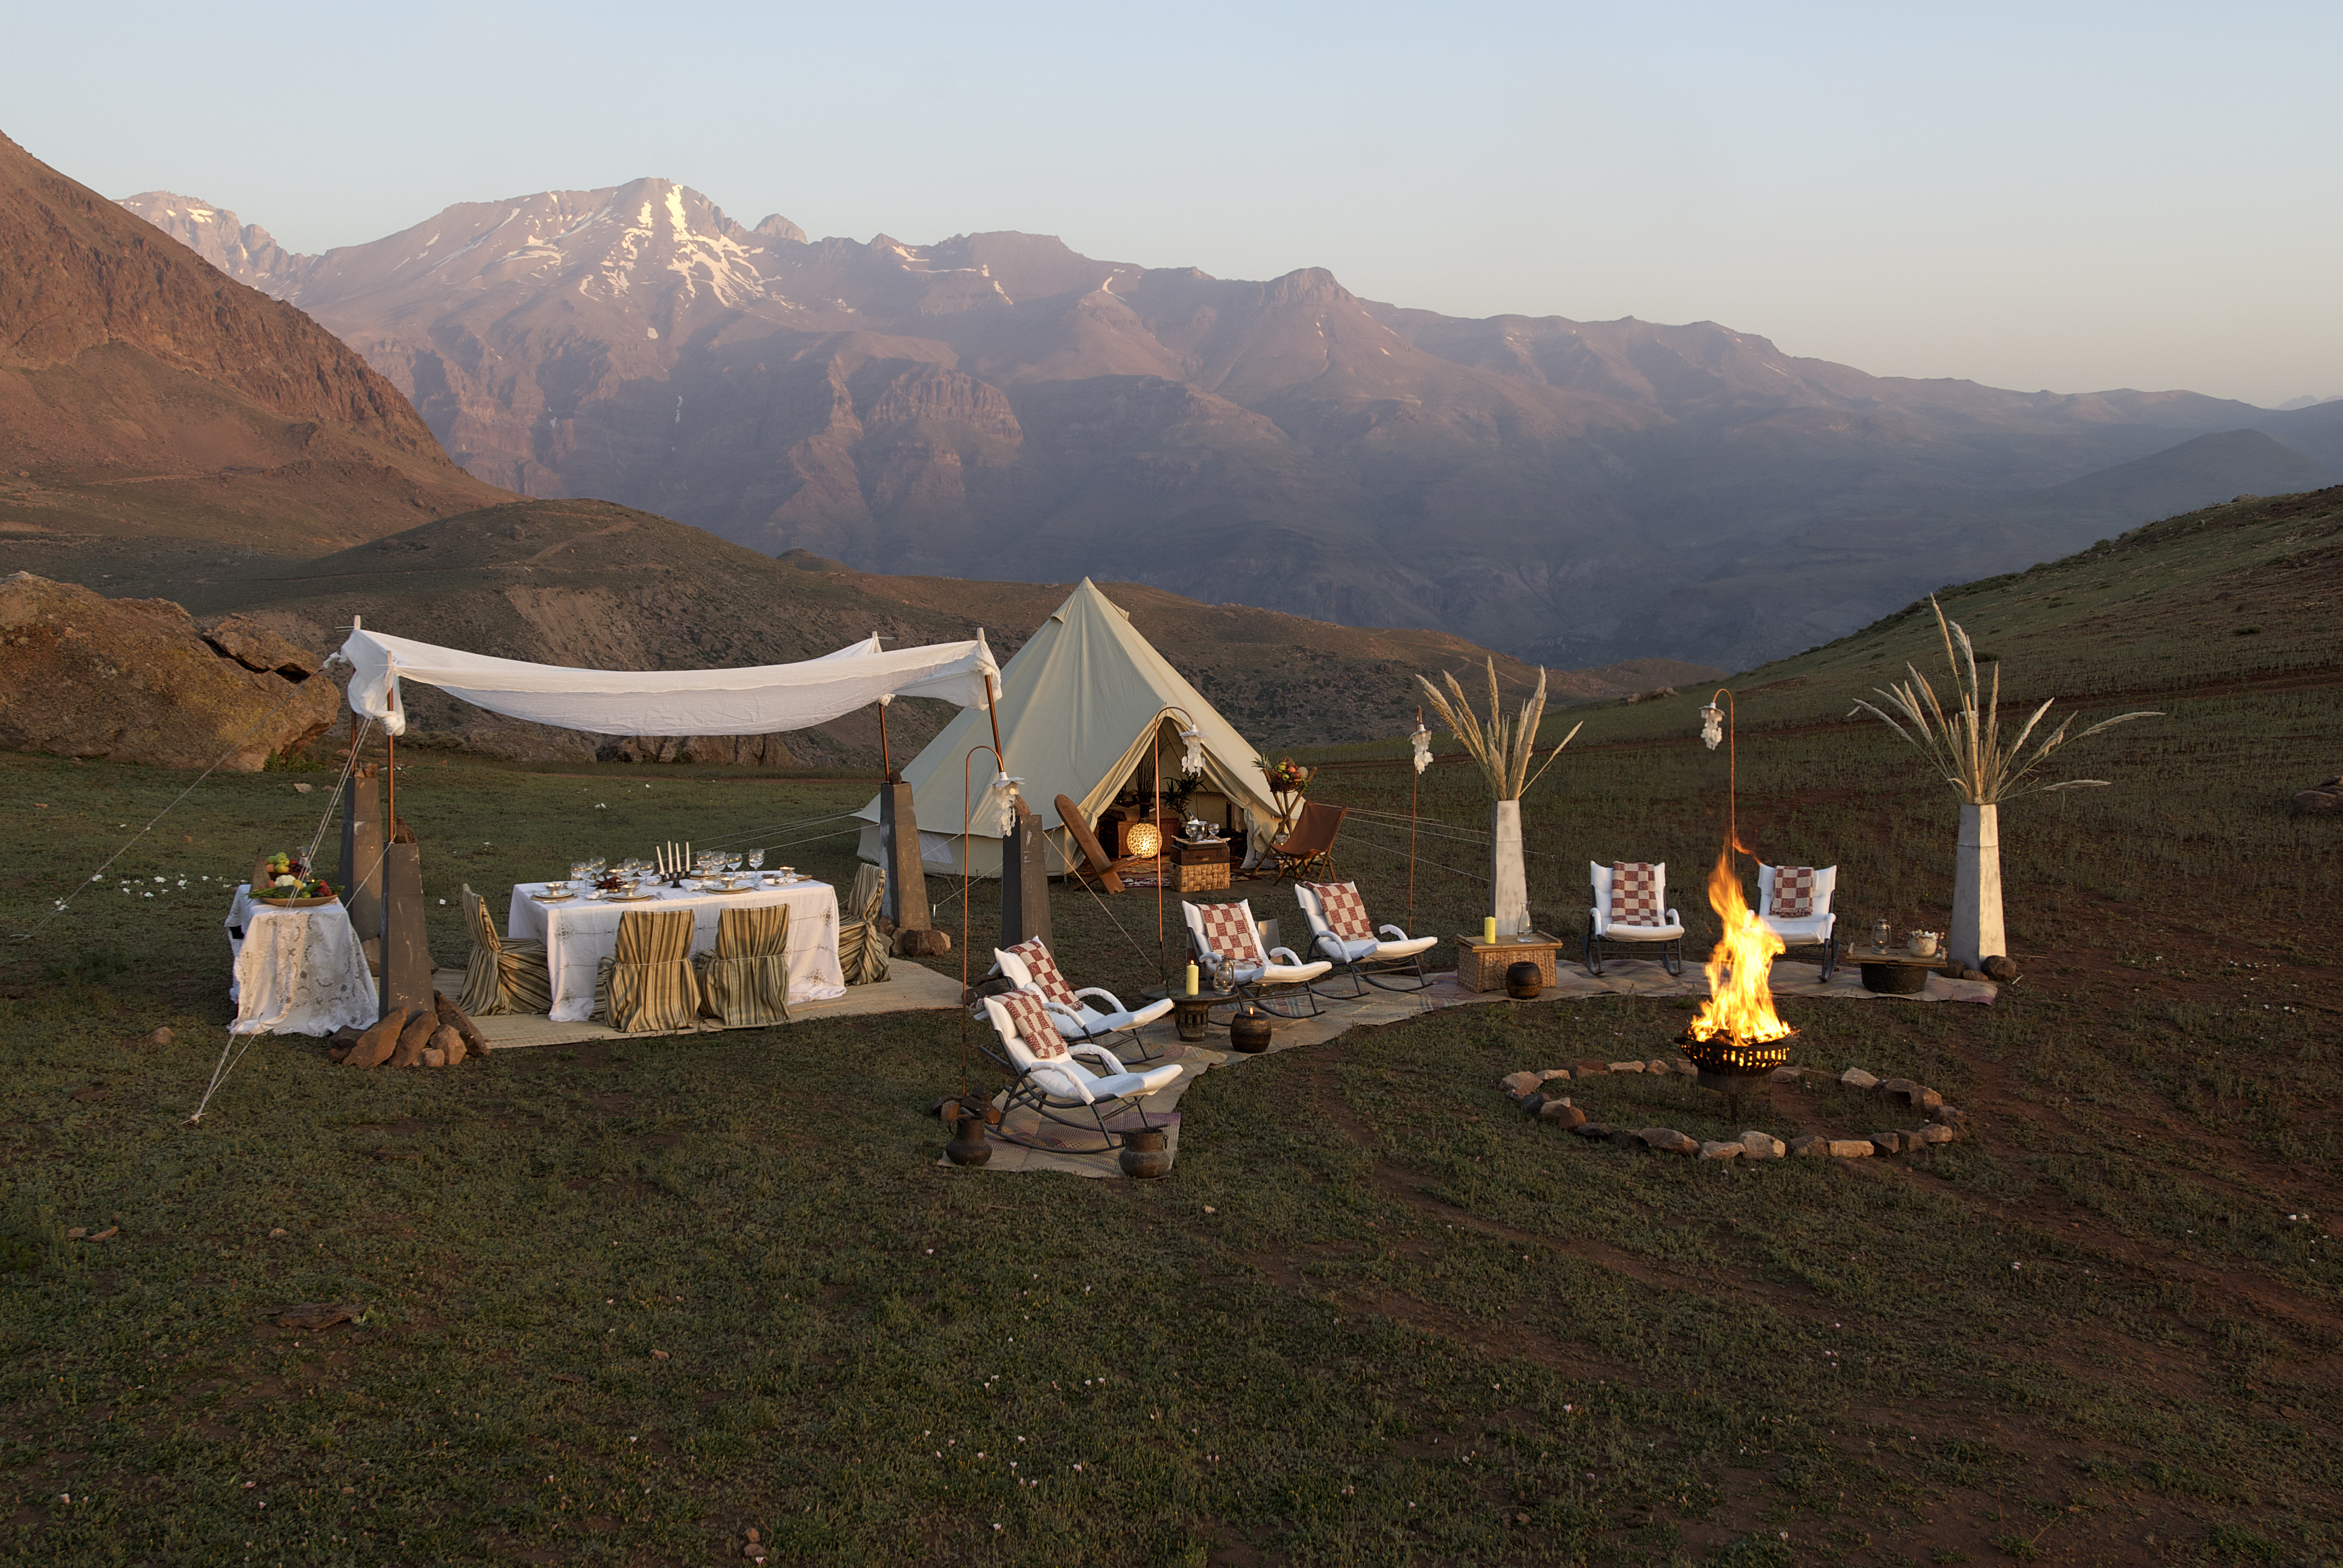 Bell_Tent_Glamping_The_Outdoor_Shop_Australia_www.theoutdoorshop.com.au